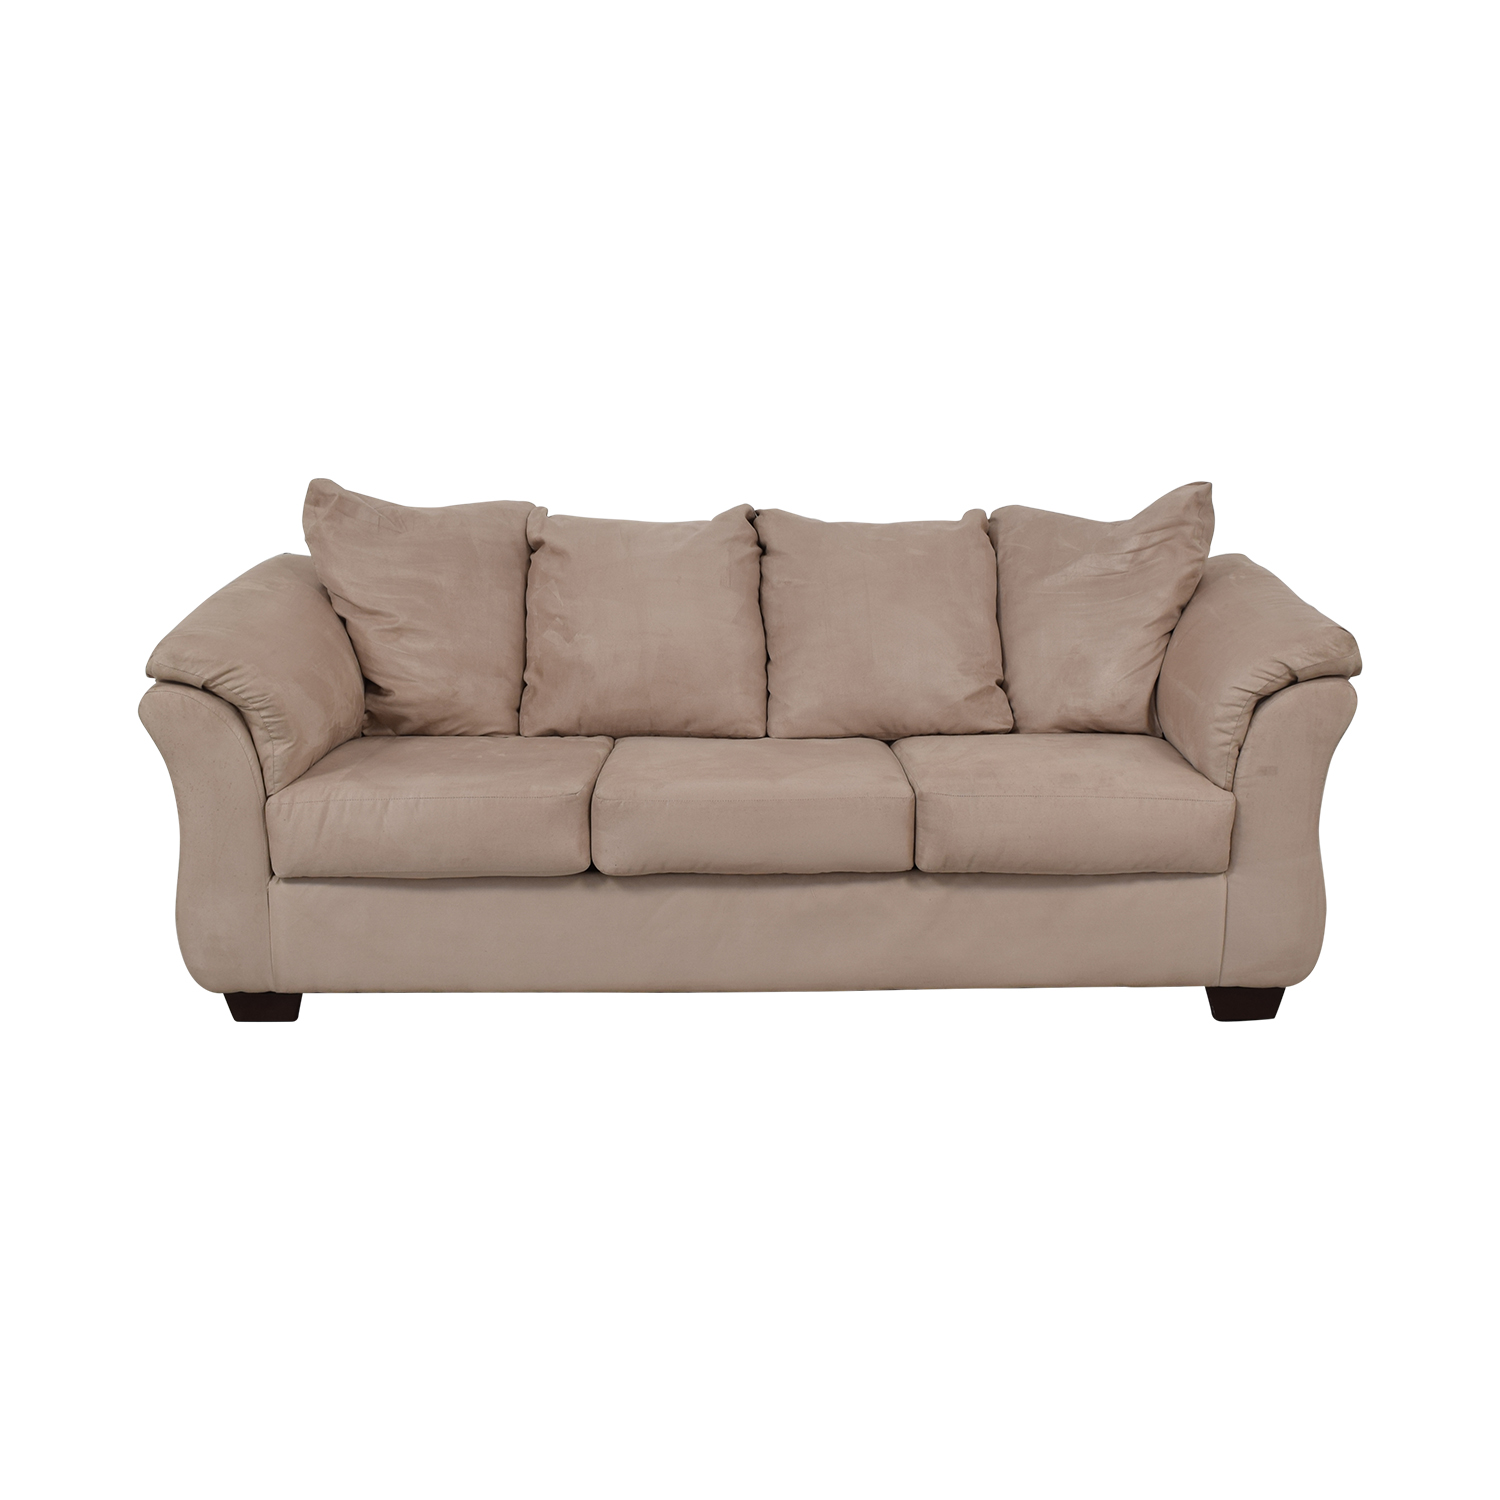 79 Off Ashley Furniture Ashley Furniture Three Cushion Sofa Sofas